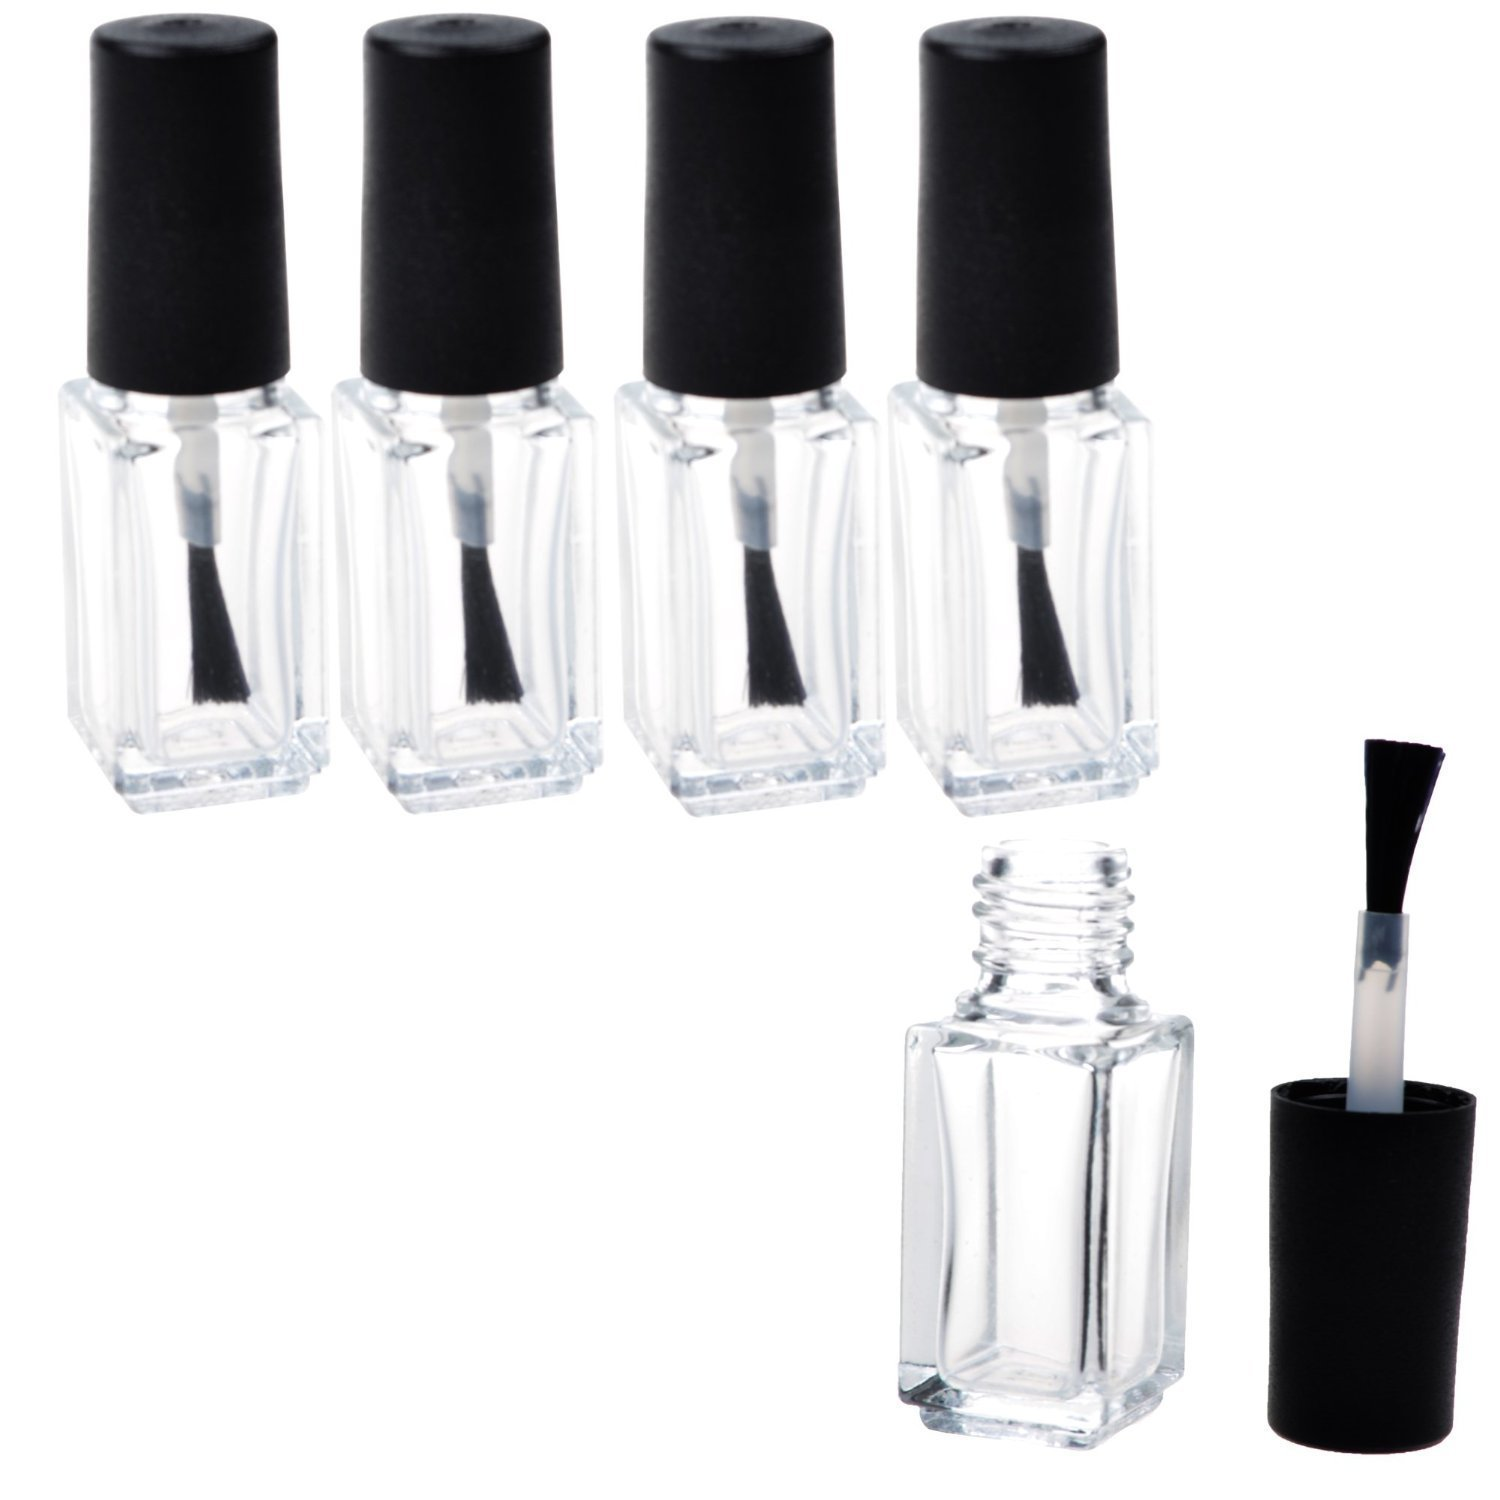 Amazon.com : Nail Polish Replacement Brushes - Pack Of 5 : Beauty